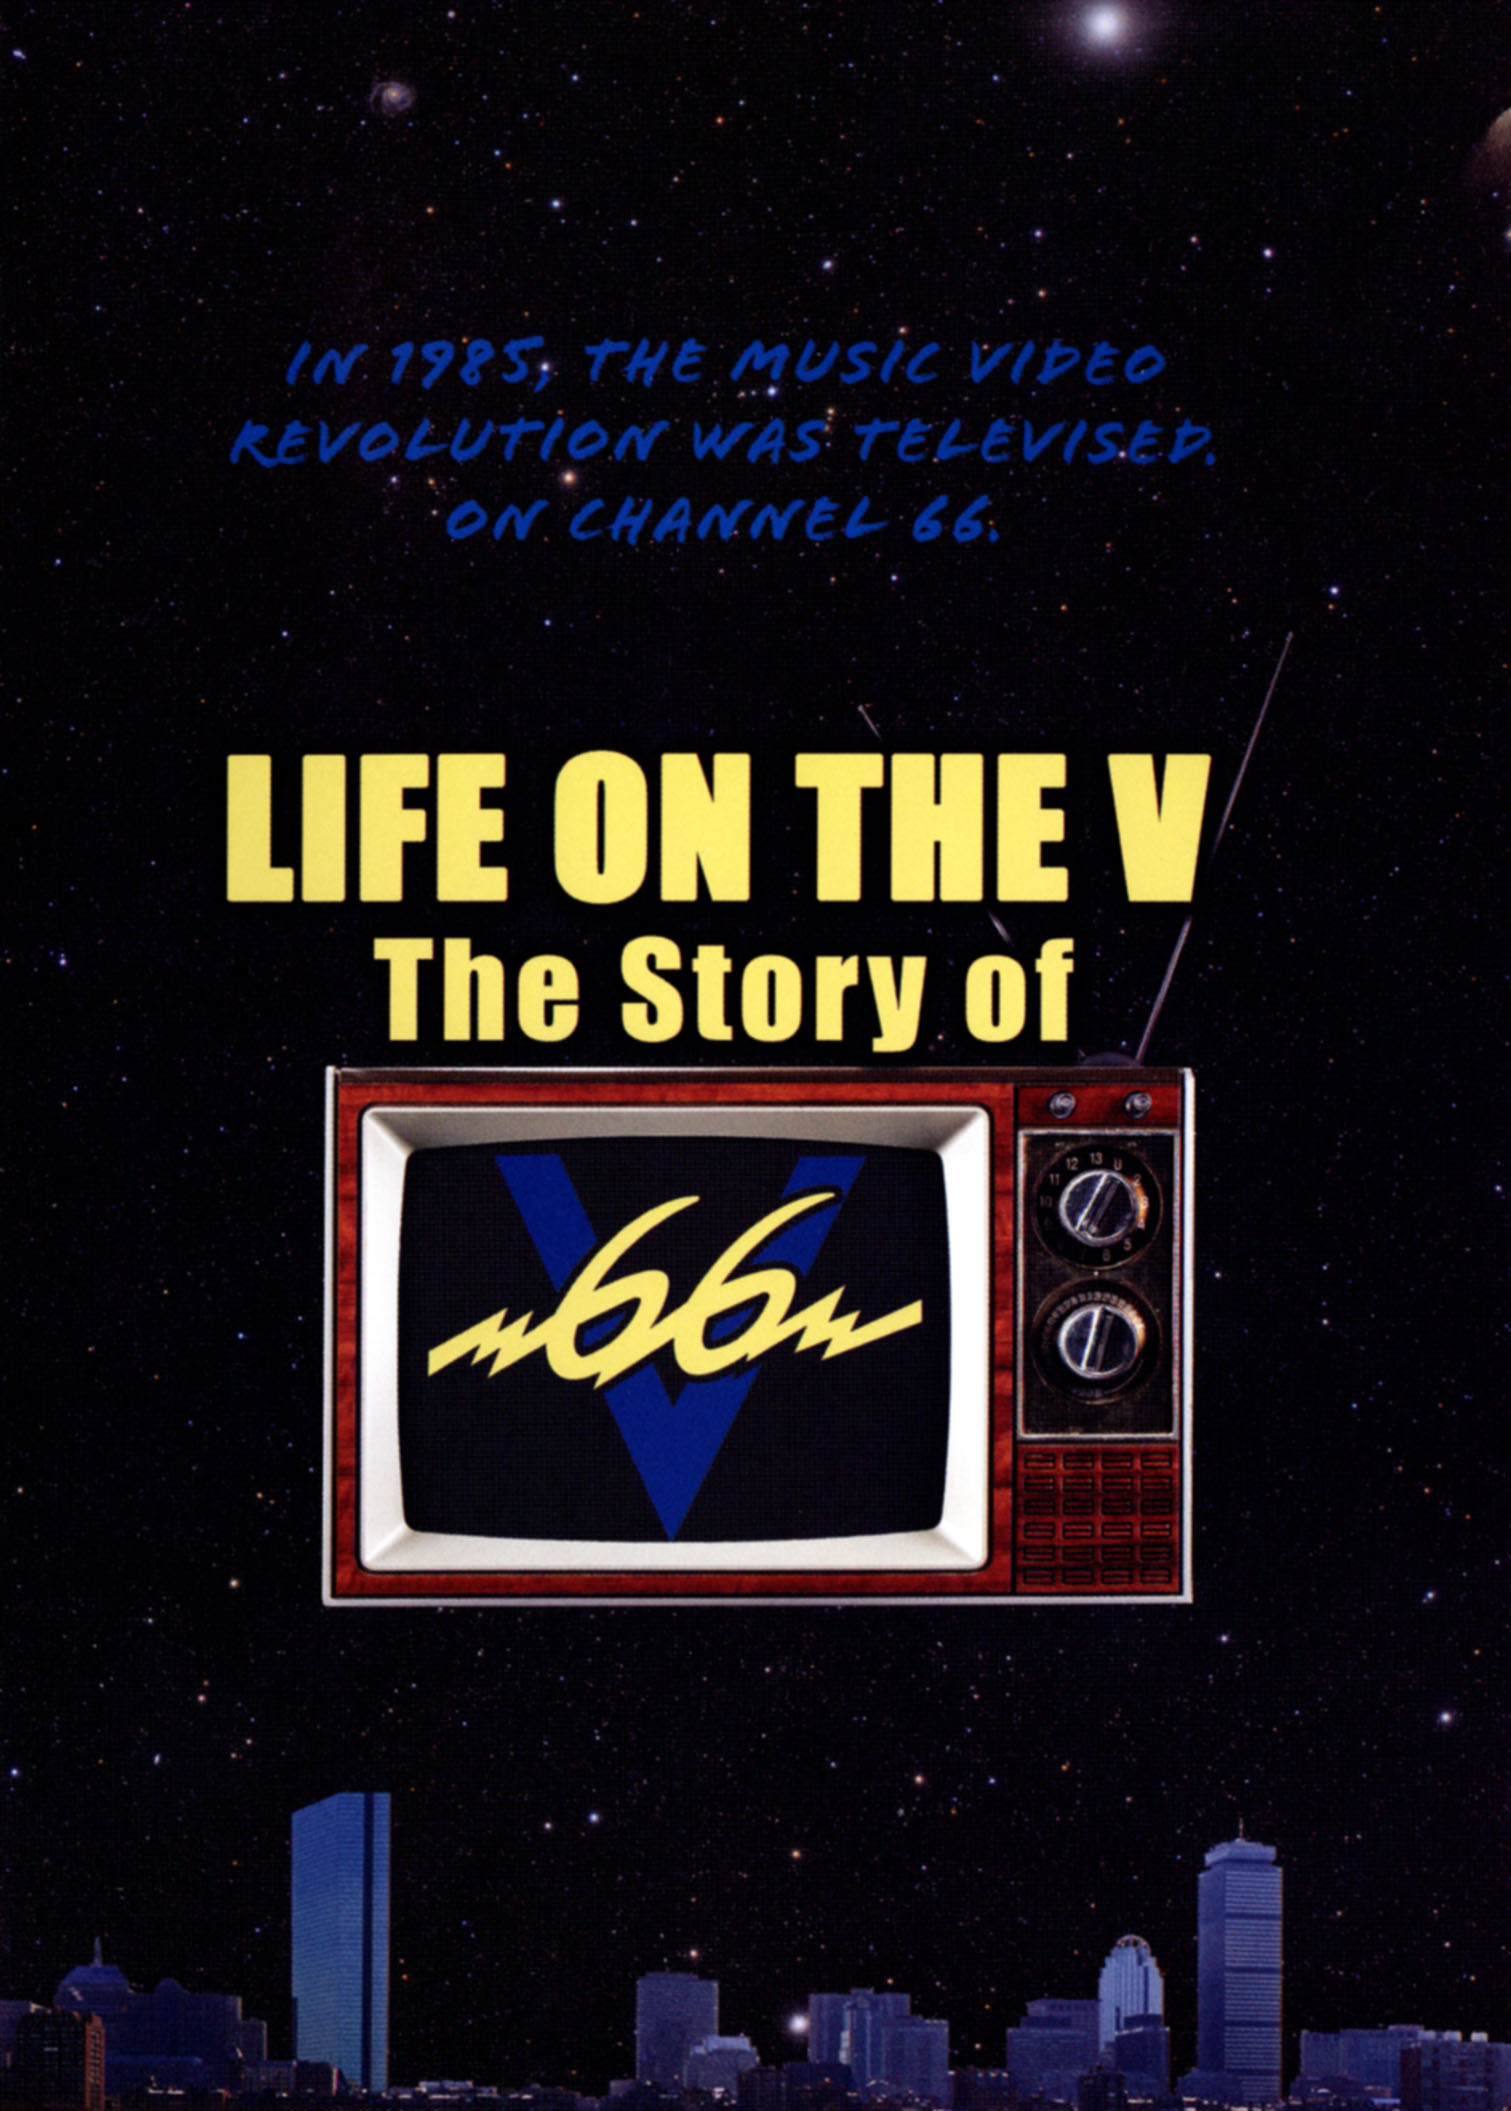 Life on the V: The Story of 66